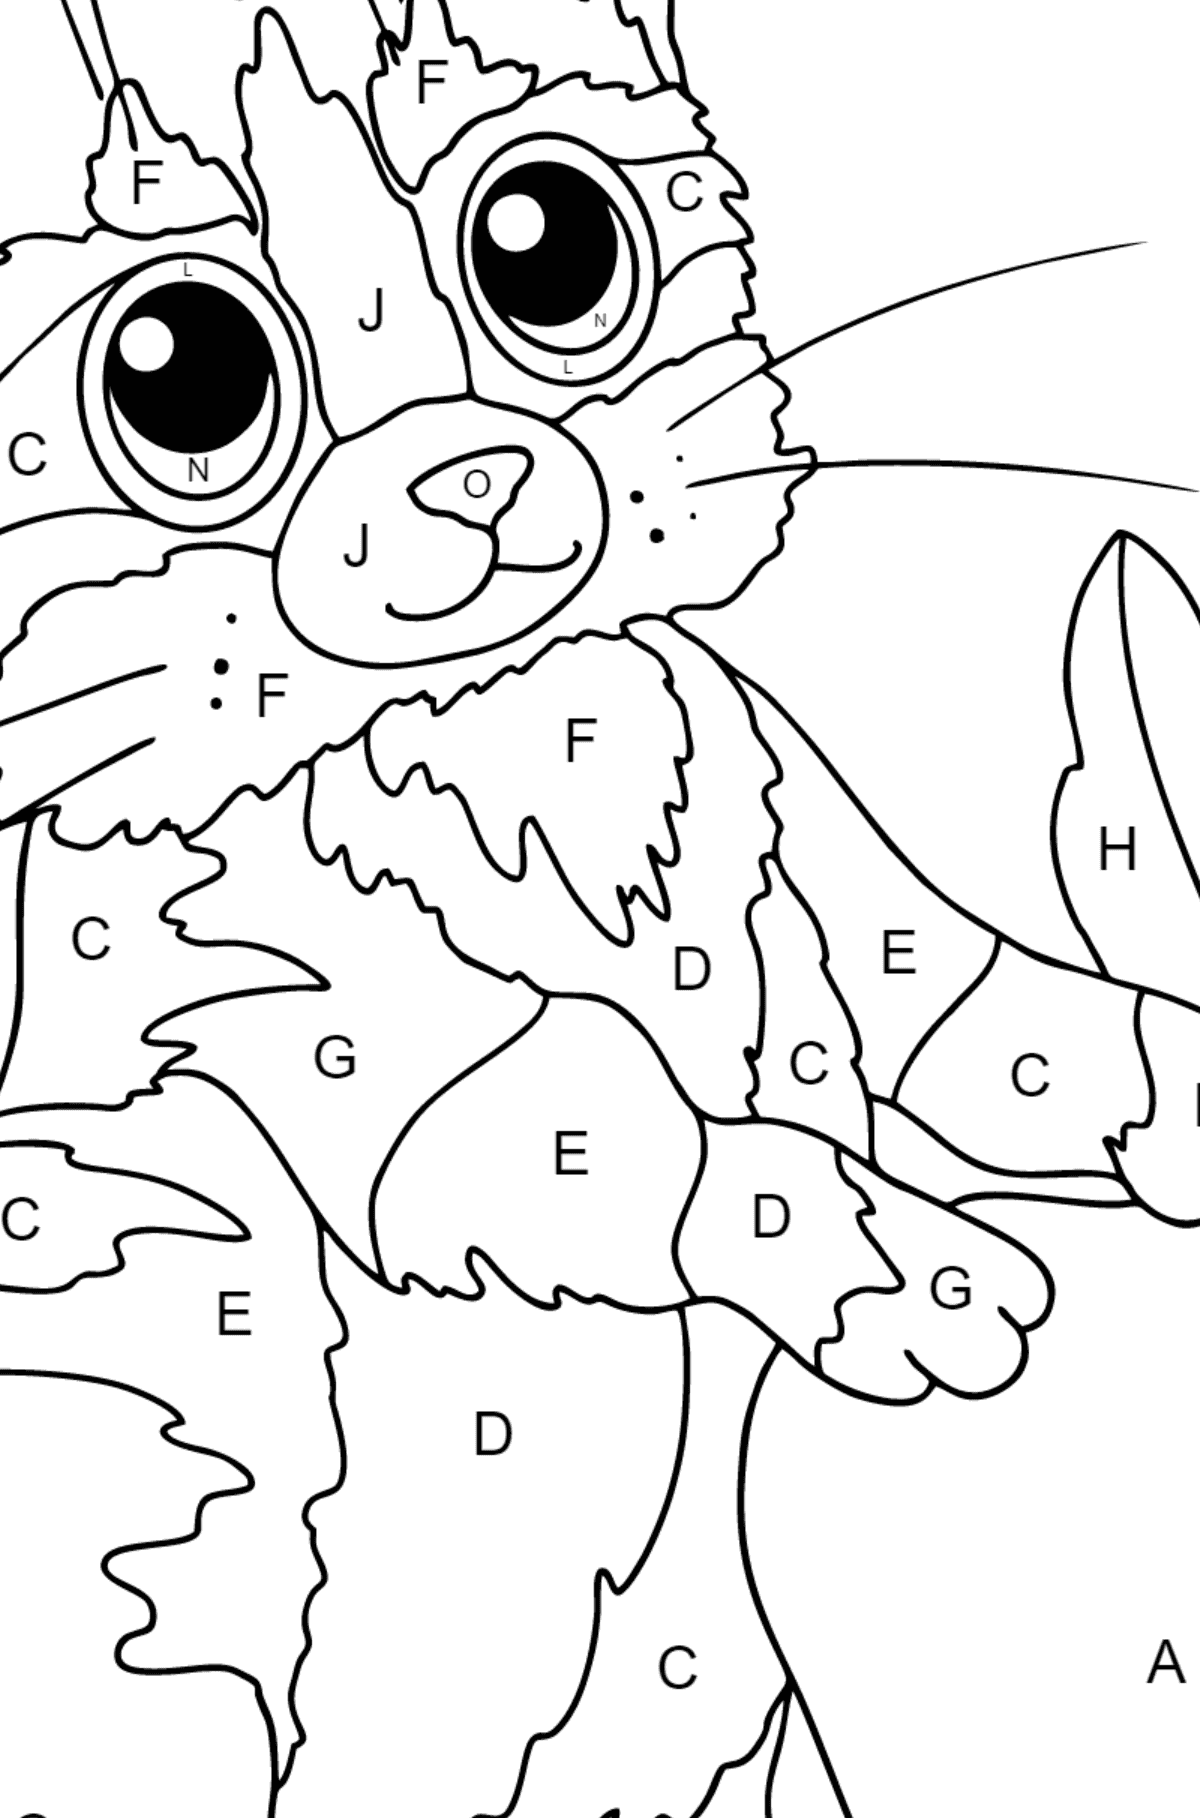 Coloring Page - A Cat and a Ripe Apple - Coloring by Letters for Children